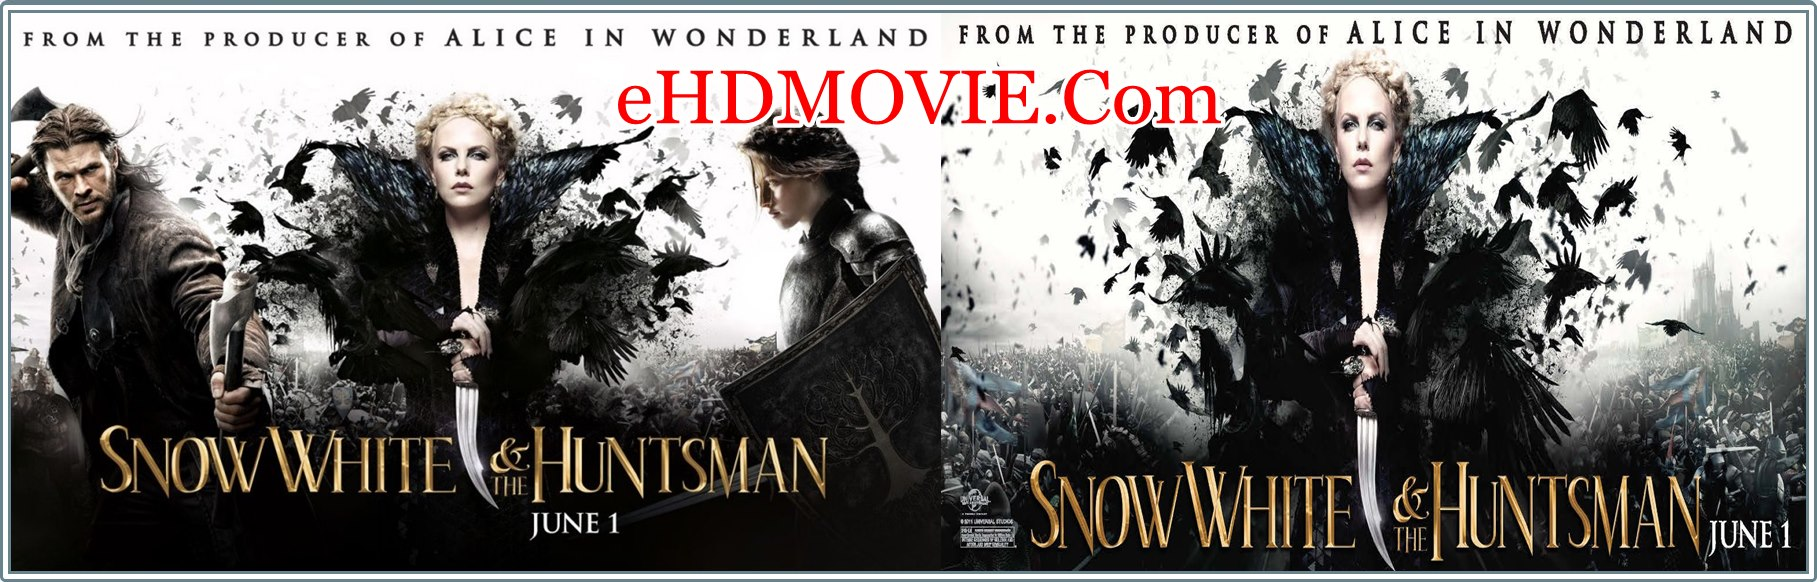 Snow White and the Huntsman 2012 Full Movie Dual Audio [Hindi – English] 1080p - 720p - 480p ORG BRRip 400MB - 900MB - 2.3GB ESubs Free Download